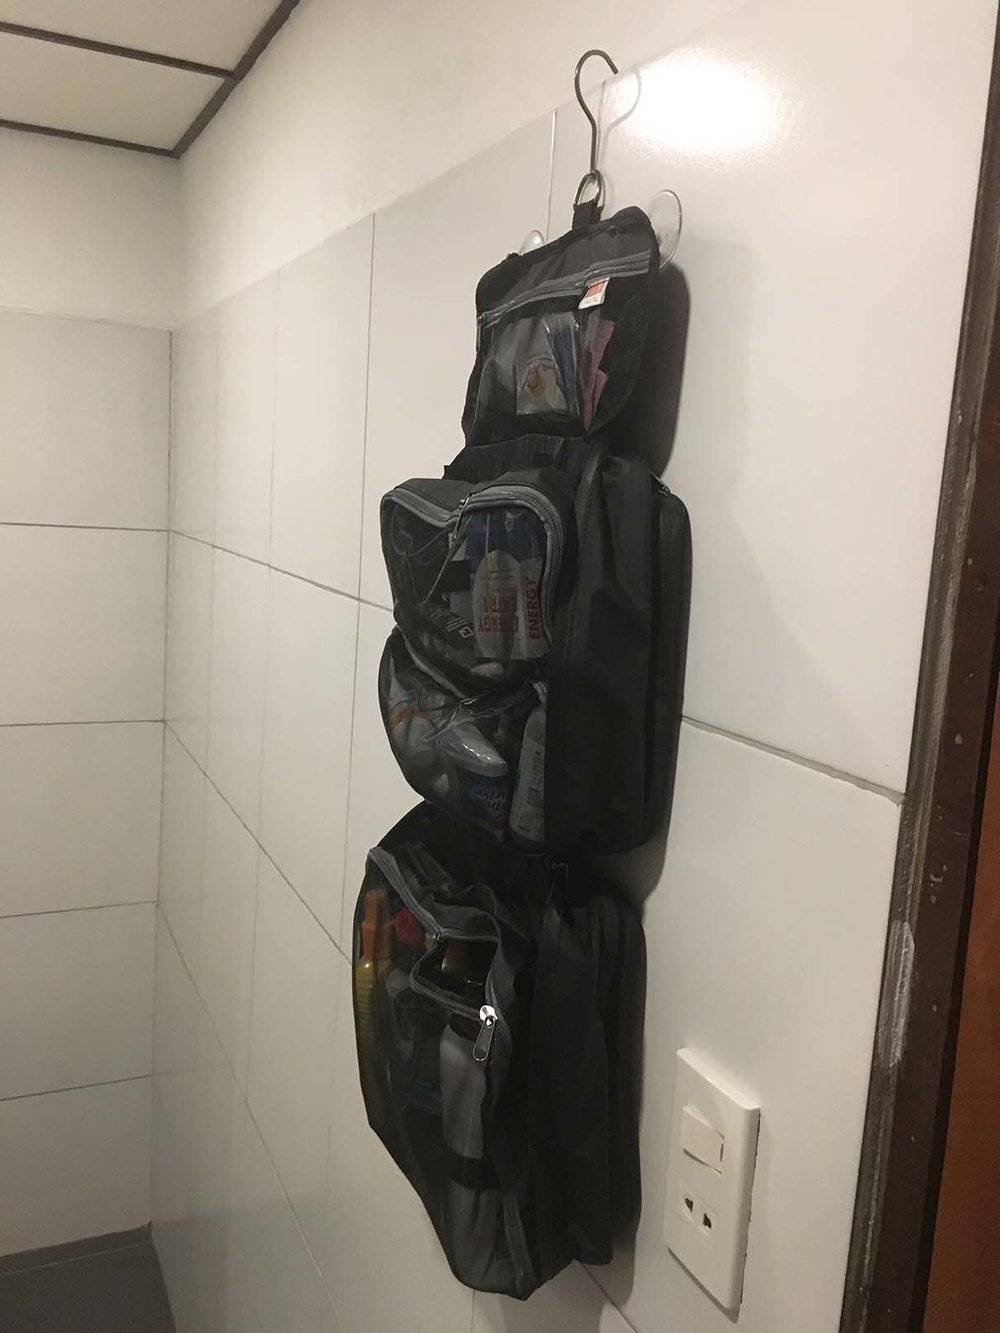 Can your toiletry bag do this in a bathroom like this, with nothing but a shower and a sink? Our HangPac can, hooked on comfortably & we haven't showed you our super strong suction cups yet!